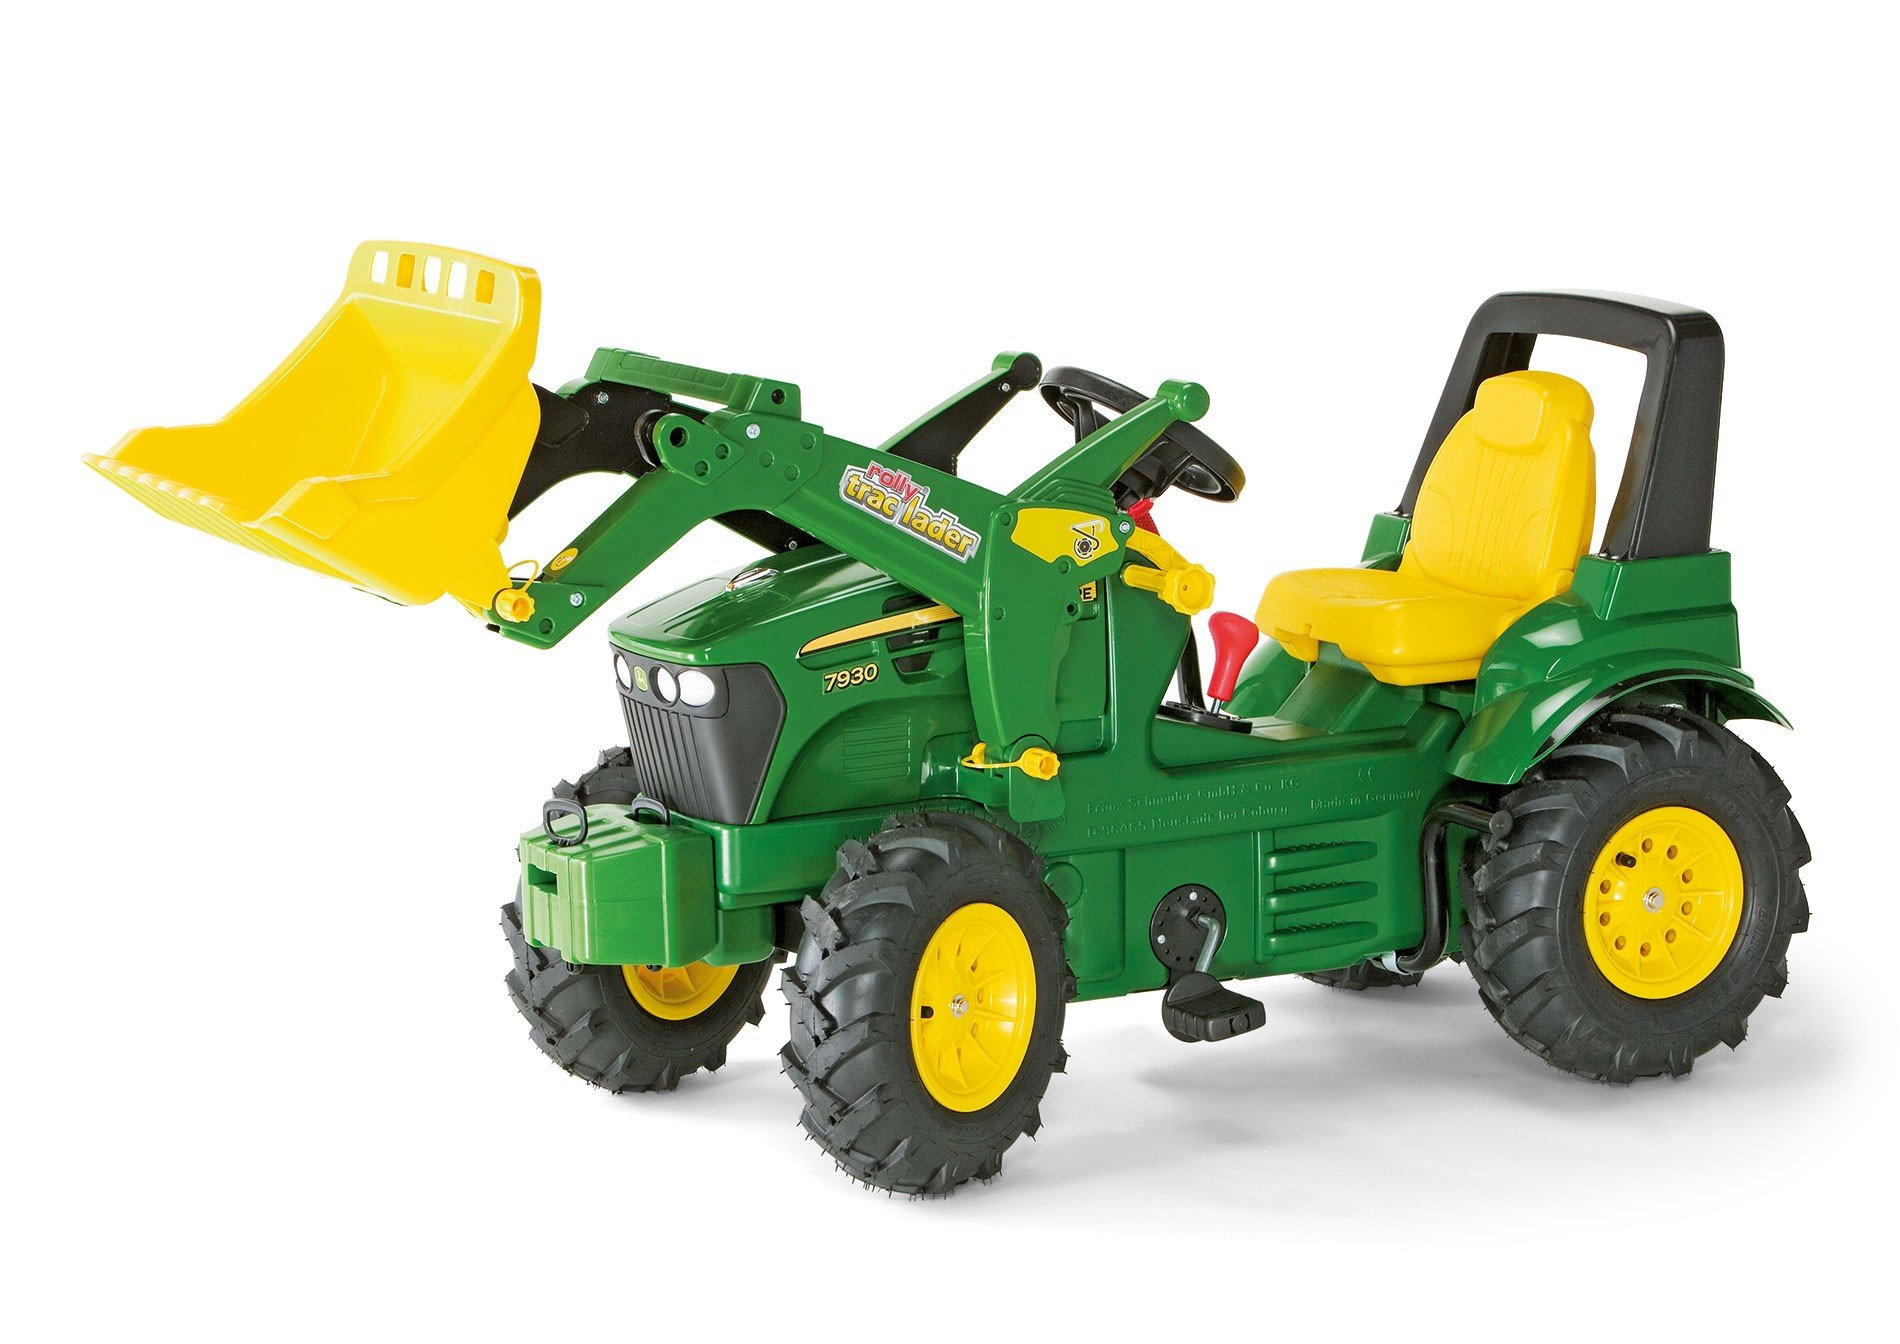 Koop Rolly Toys John Deere Tractor 7930 Pedal ride on